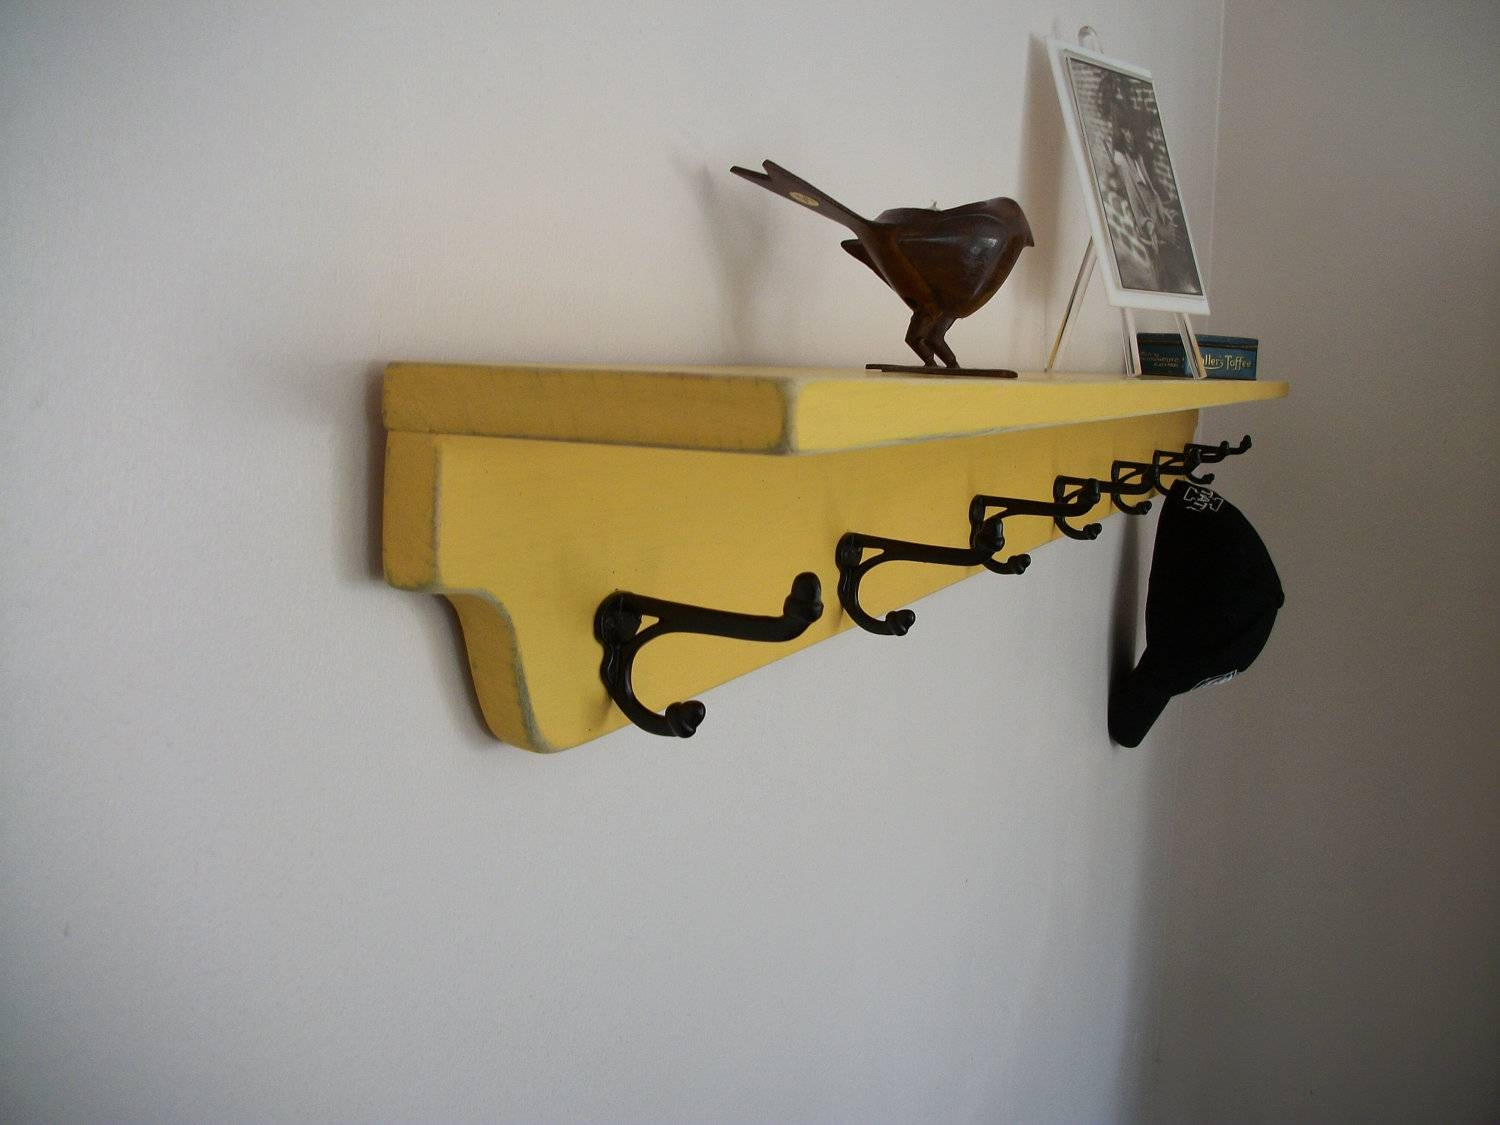 Remarkable Coat Hooks Pictures Design Inspiration – Tikspor Intended For Most Current Wall Art Coat Hooks (View 16 of 20)